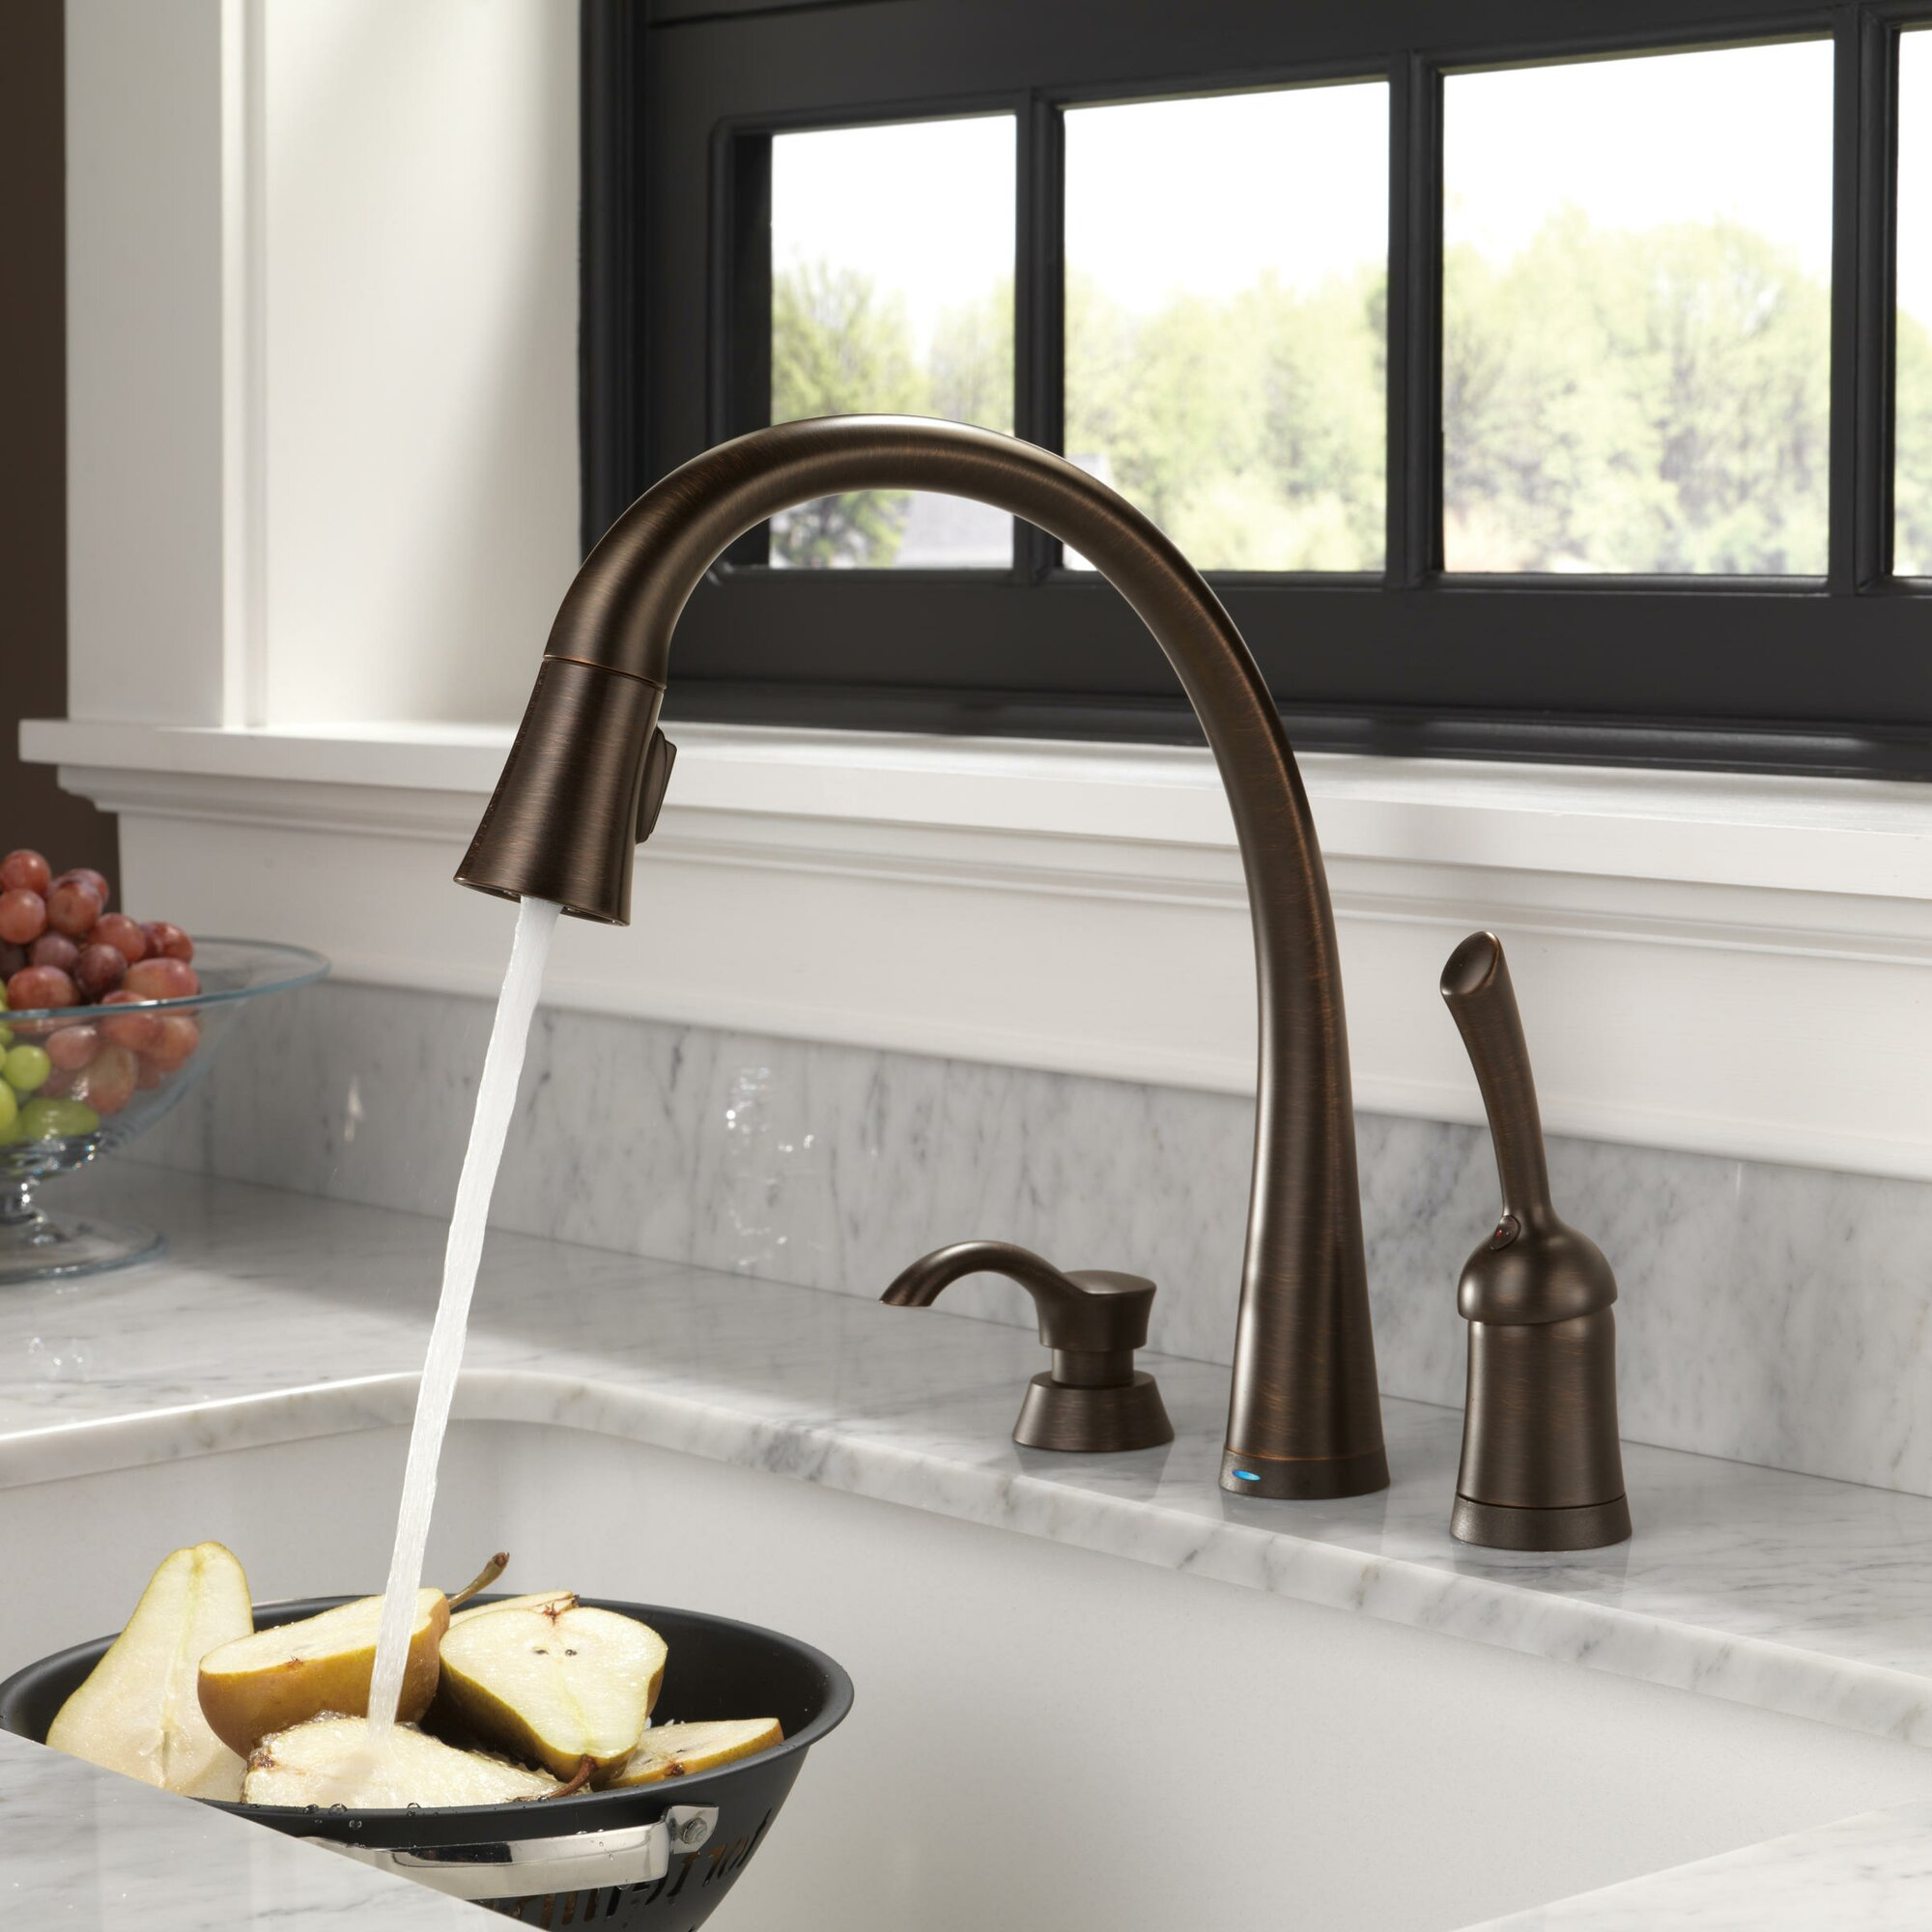 kitchen faucets with touch technology ierie com kitchen faucets with touch technology ierie com